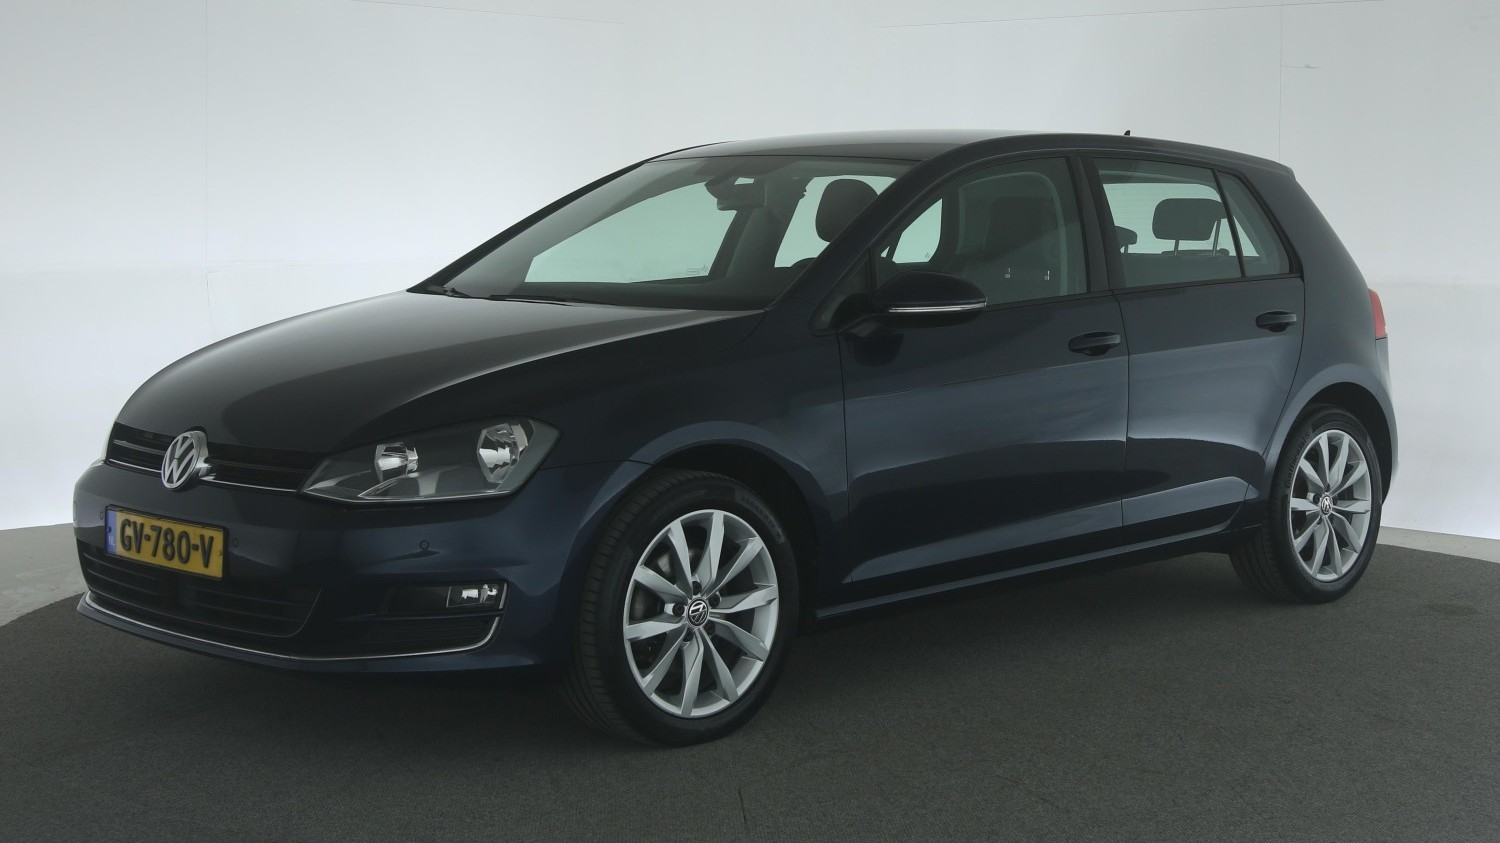 Volkswagen Golf Hatchback 2015 GV-780-V 1